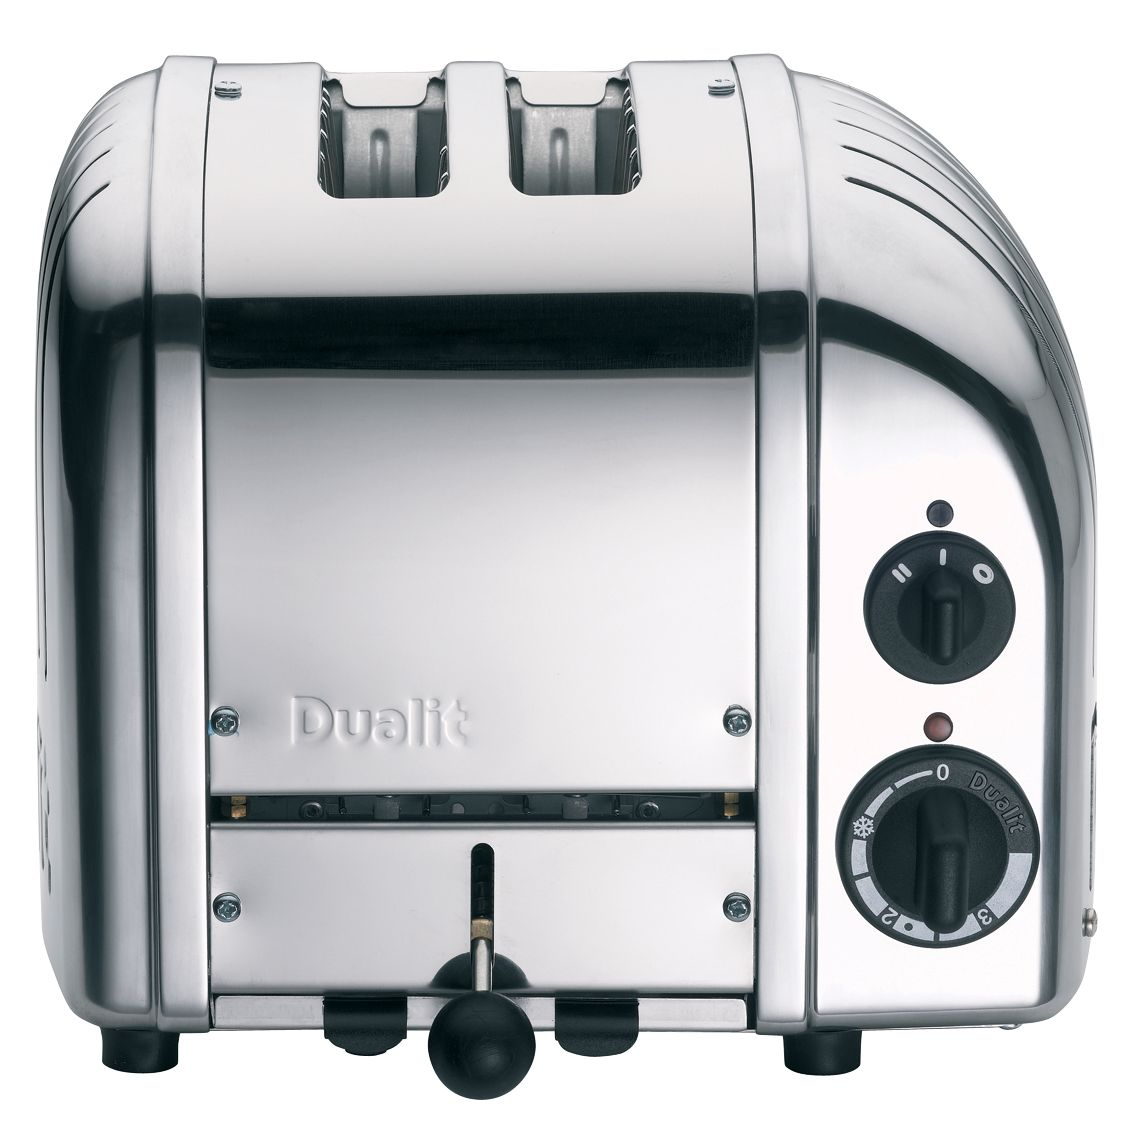 The Classic Toaster